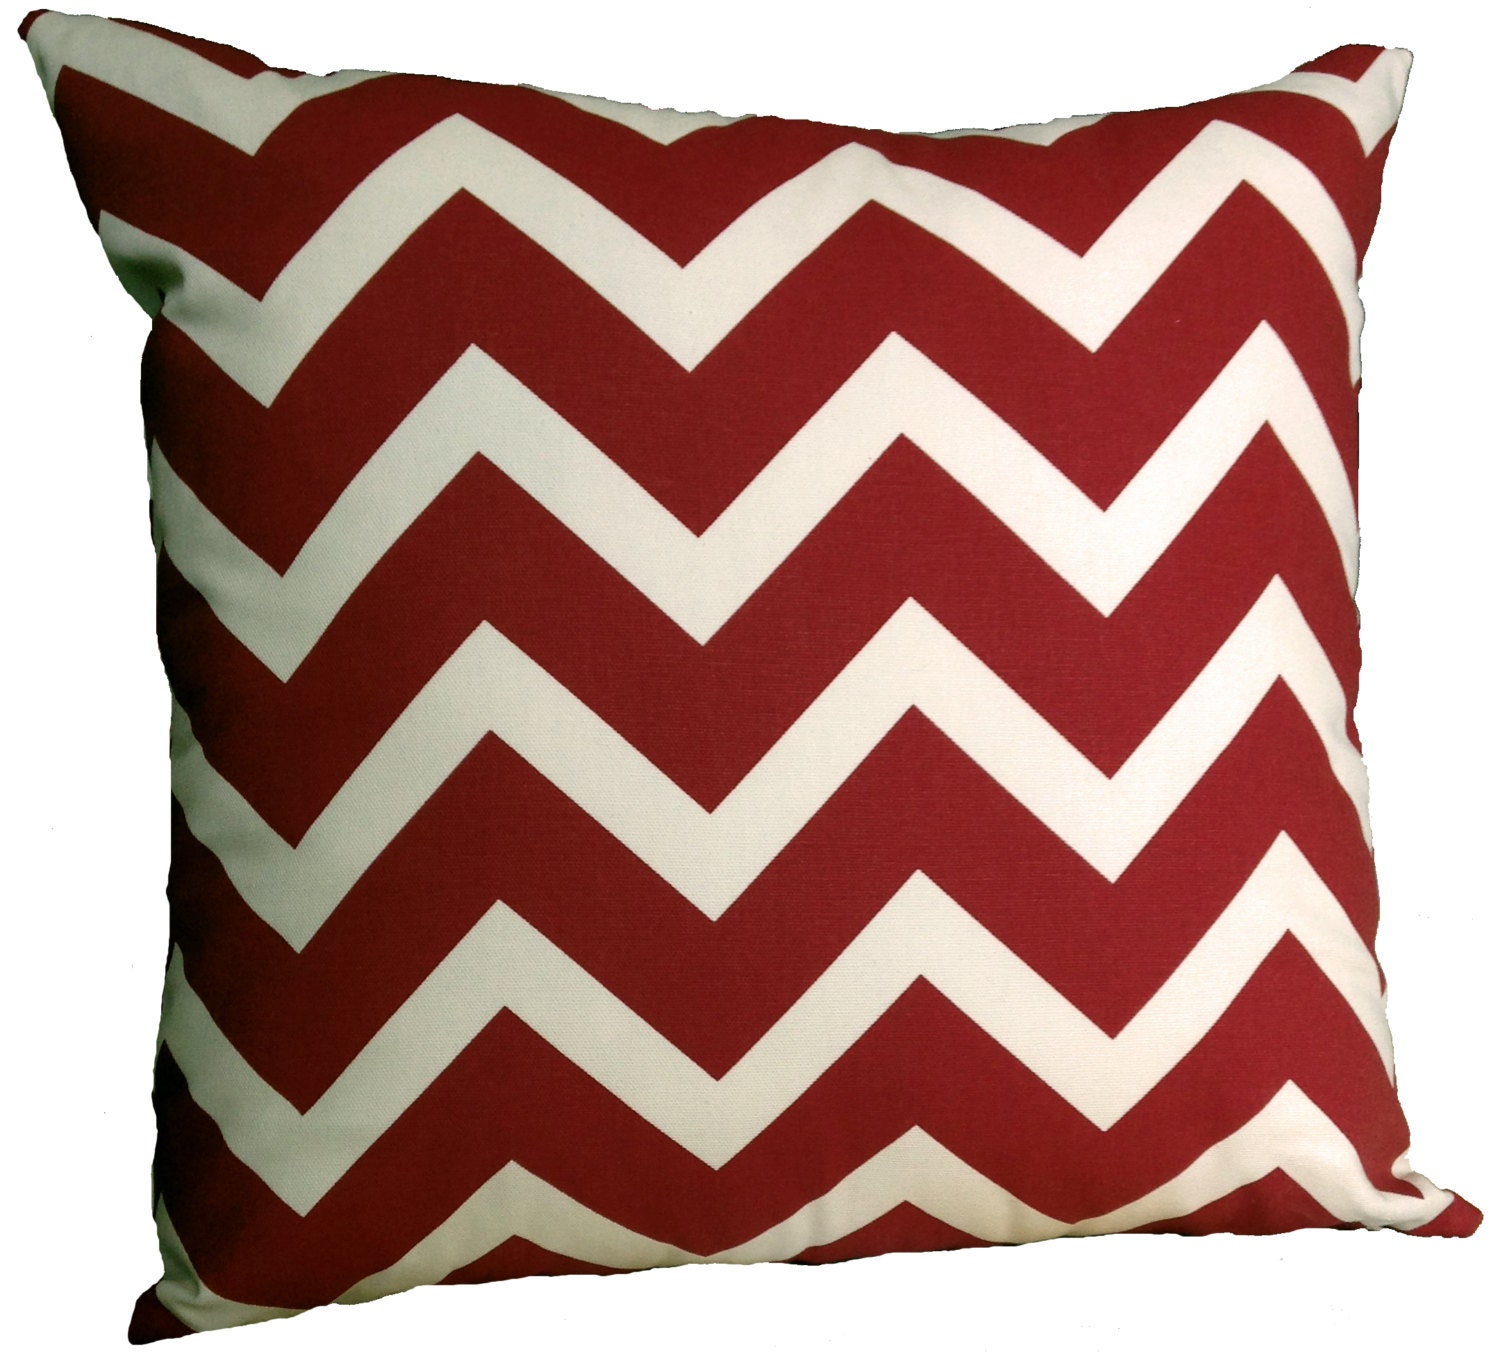 Throw Pillow Inserts 18 X 18 : Handmade 18 x 18 Decorative Pillow Insert Included. Brick Red